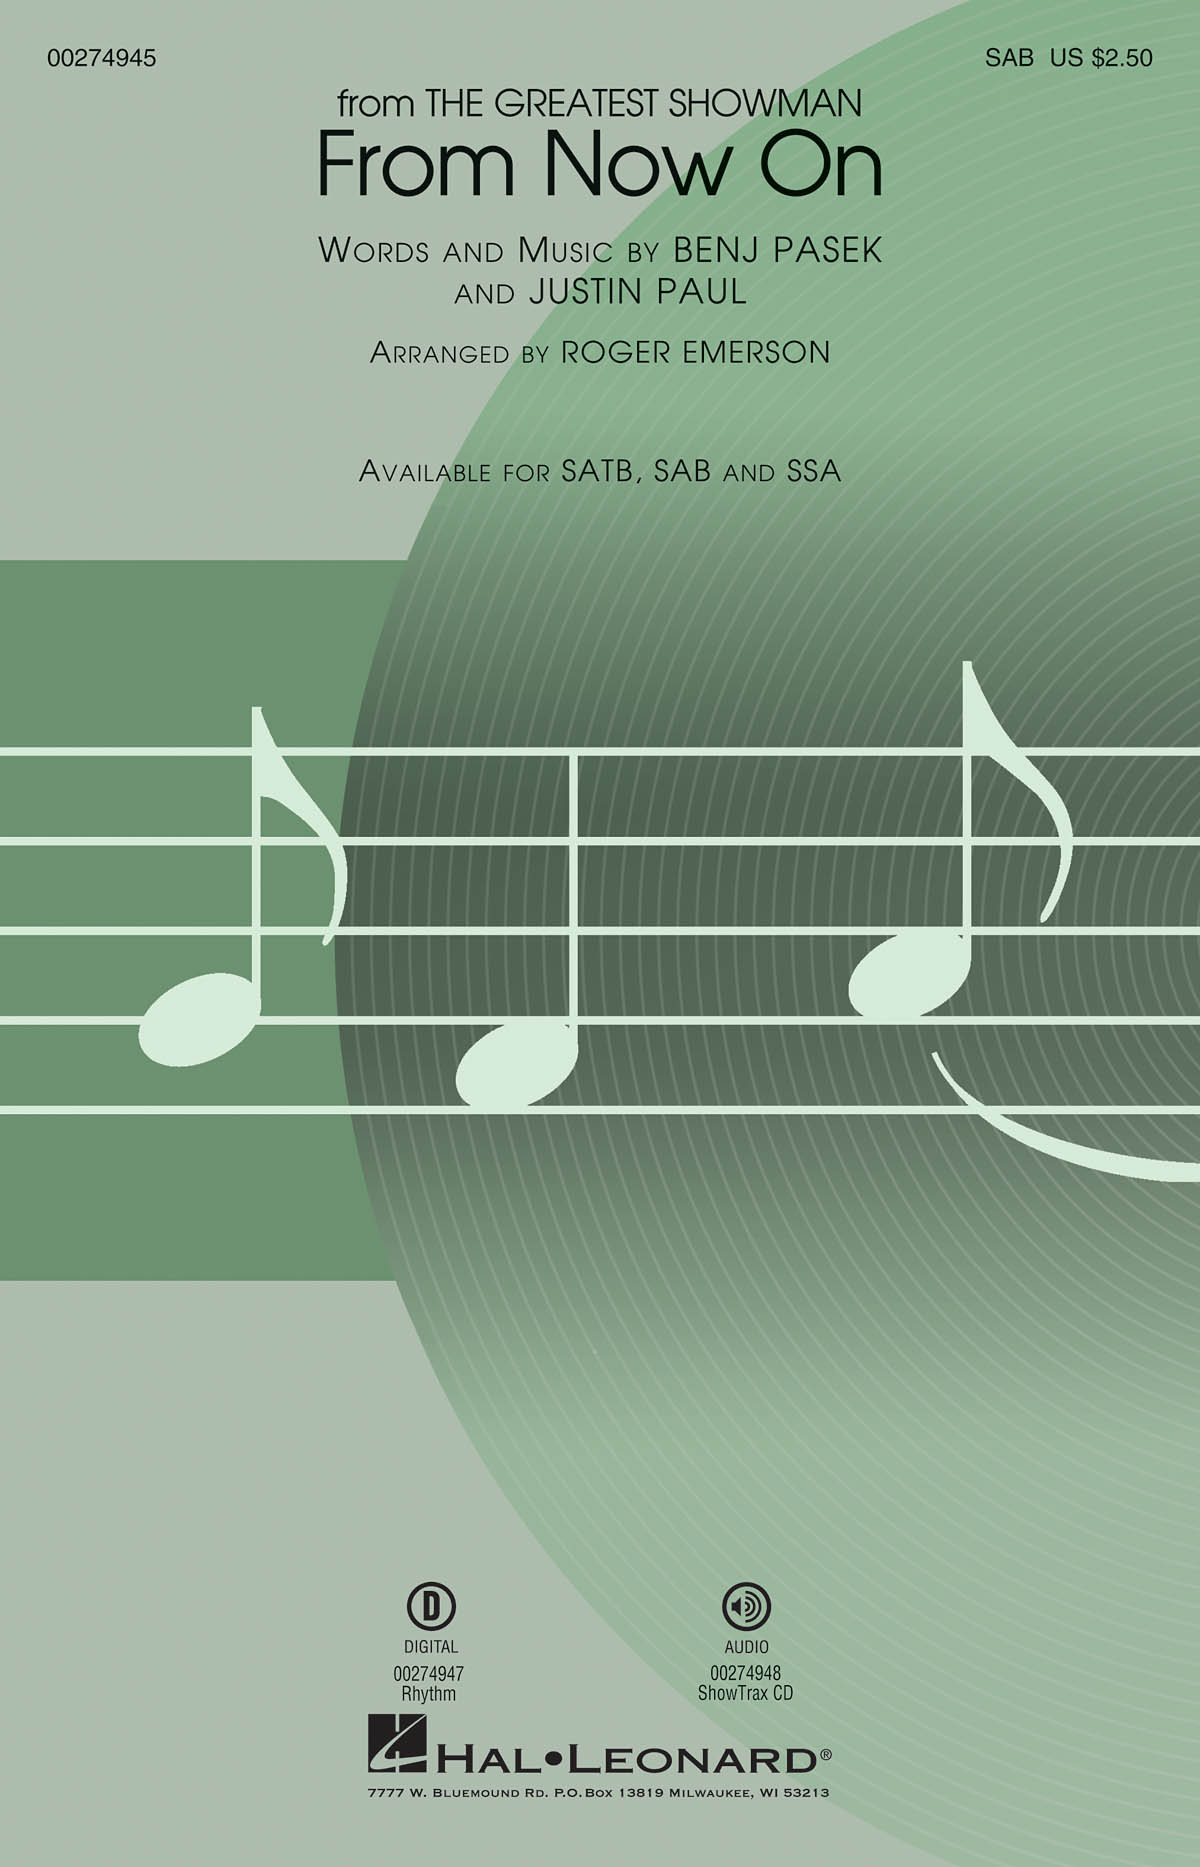 From Now On 'The Greatest Showman' - SAB (arr. Emerson). Sheet Music  Downloads for SAB  Piano Accompaniment